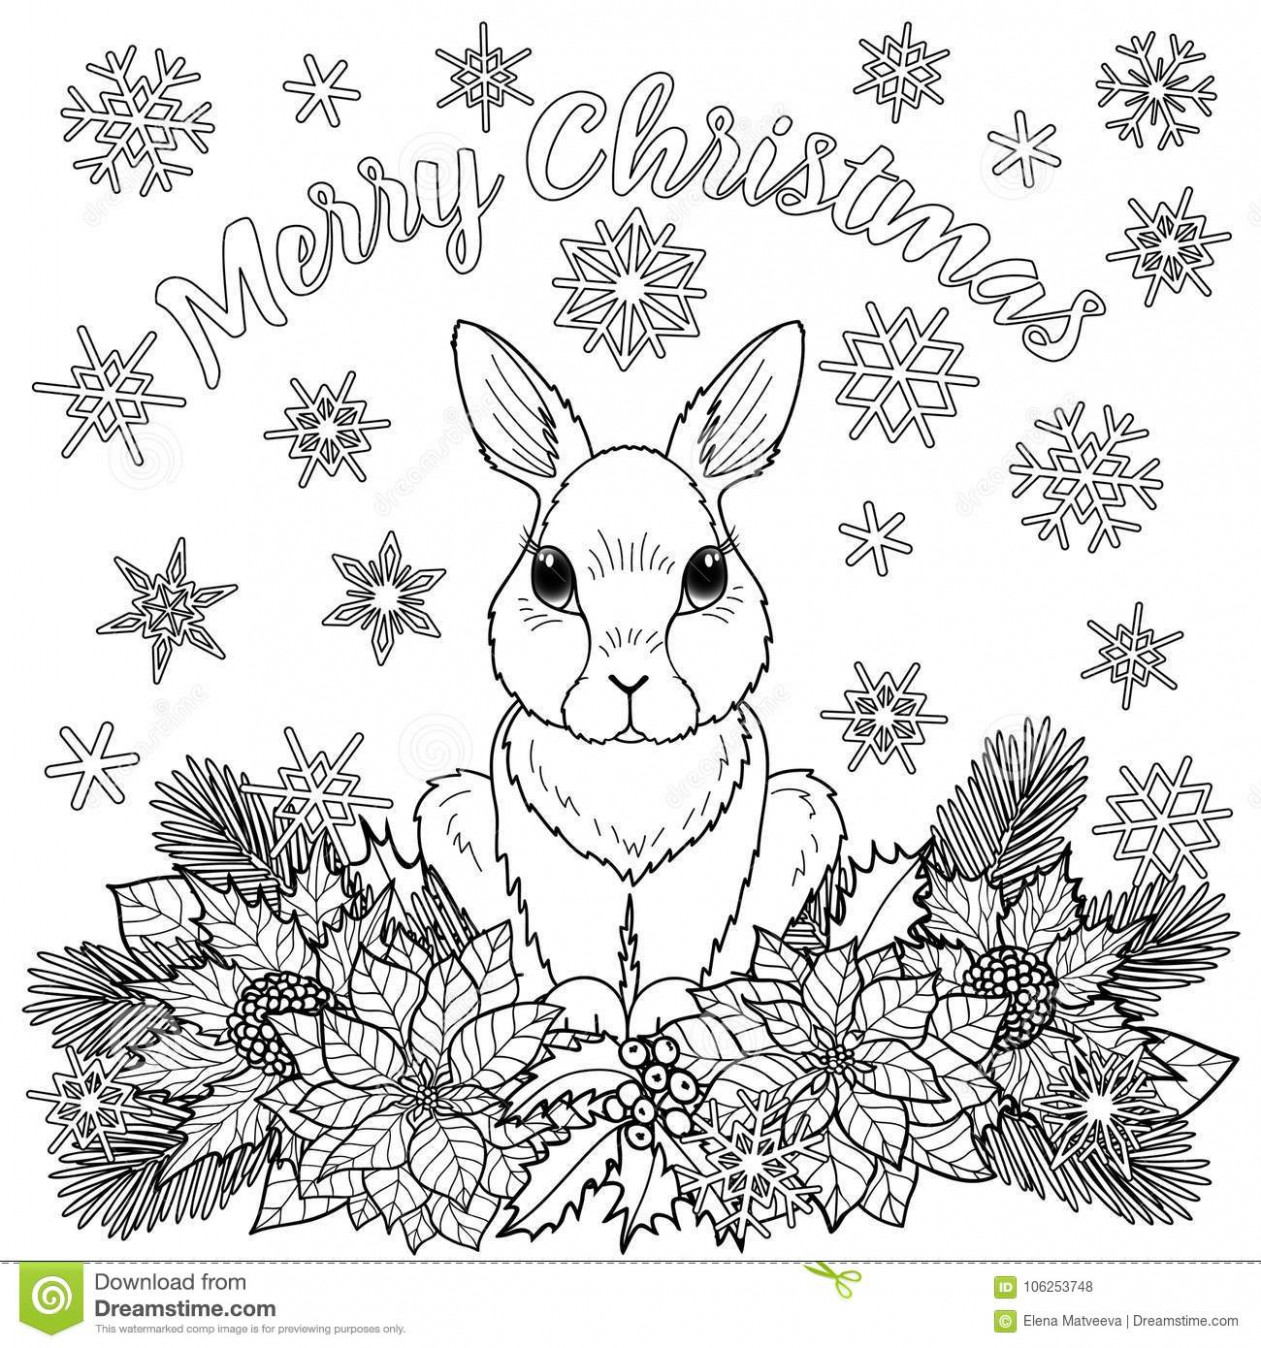 Merry Christmas Coloring Page With Rabbit Stock Vector ...